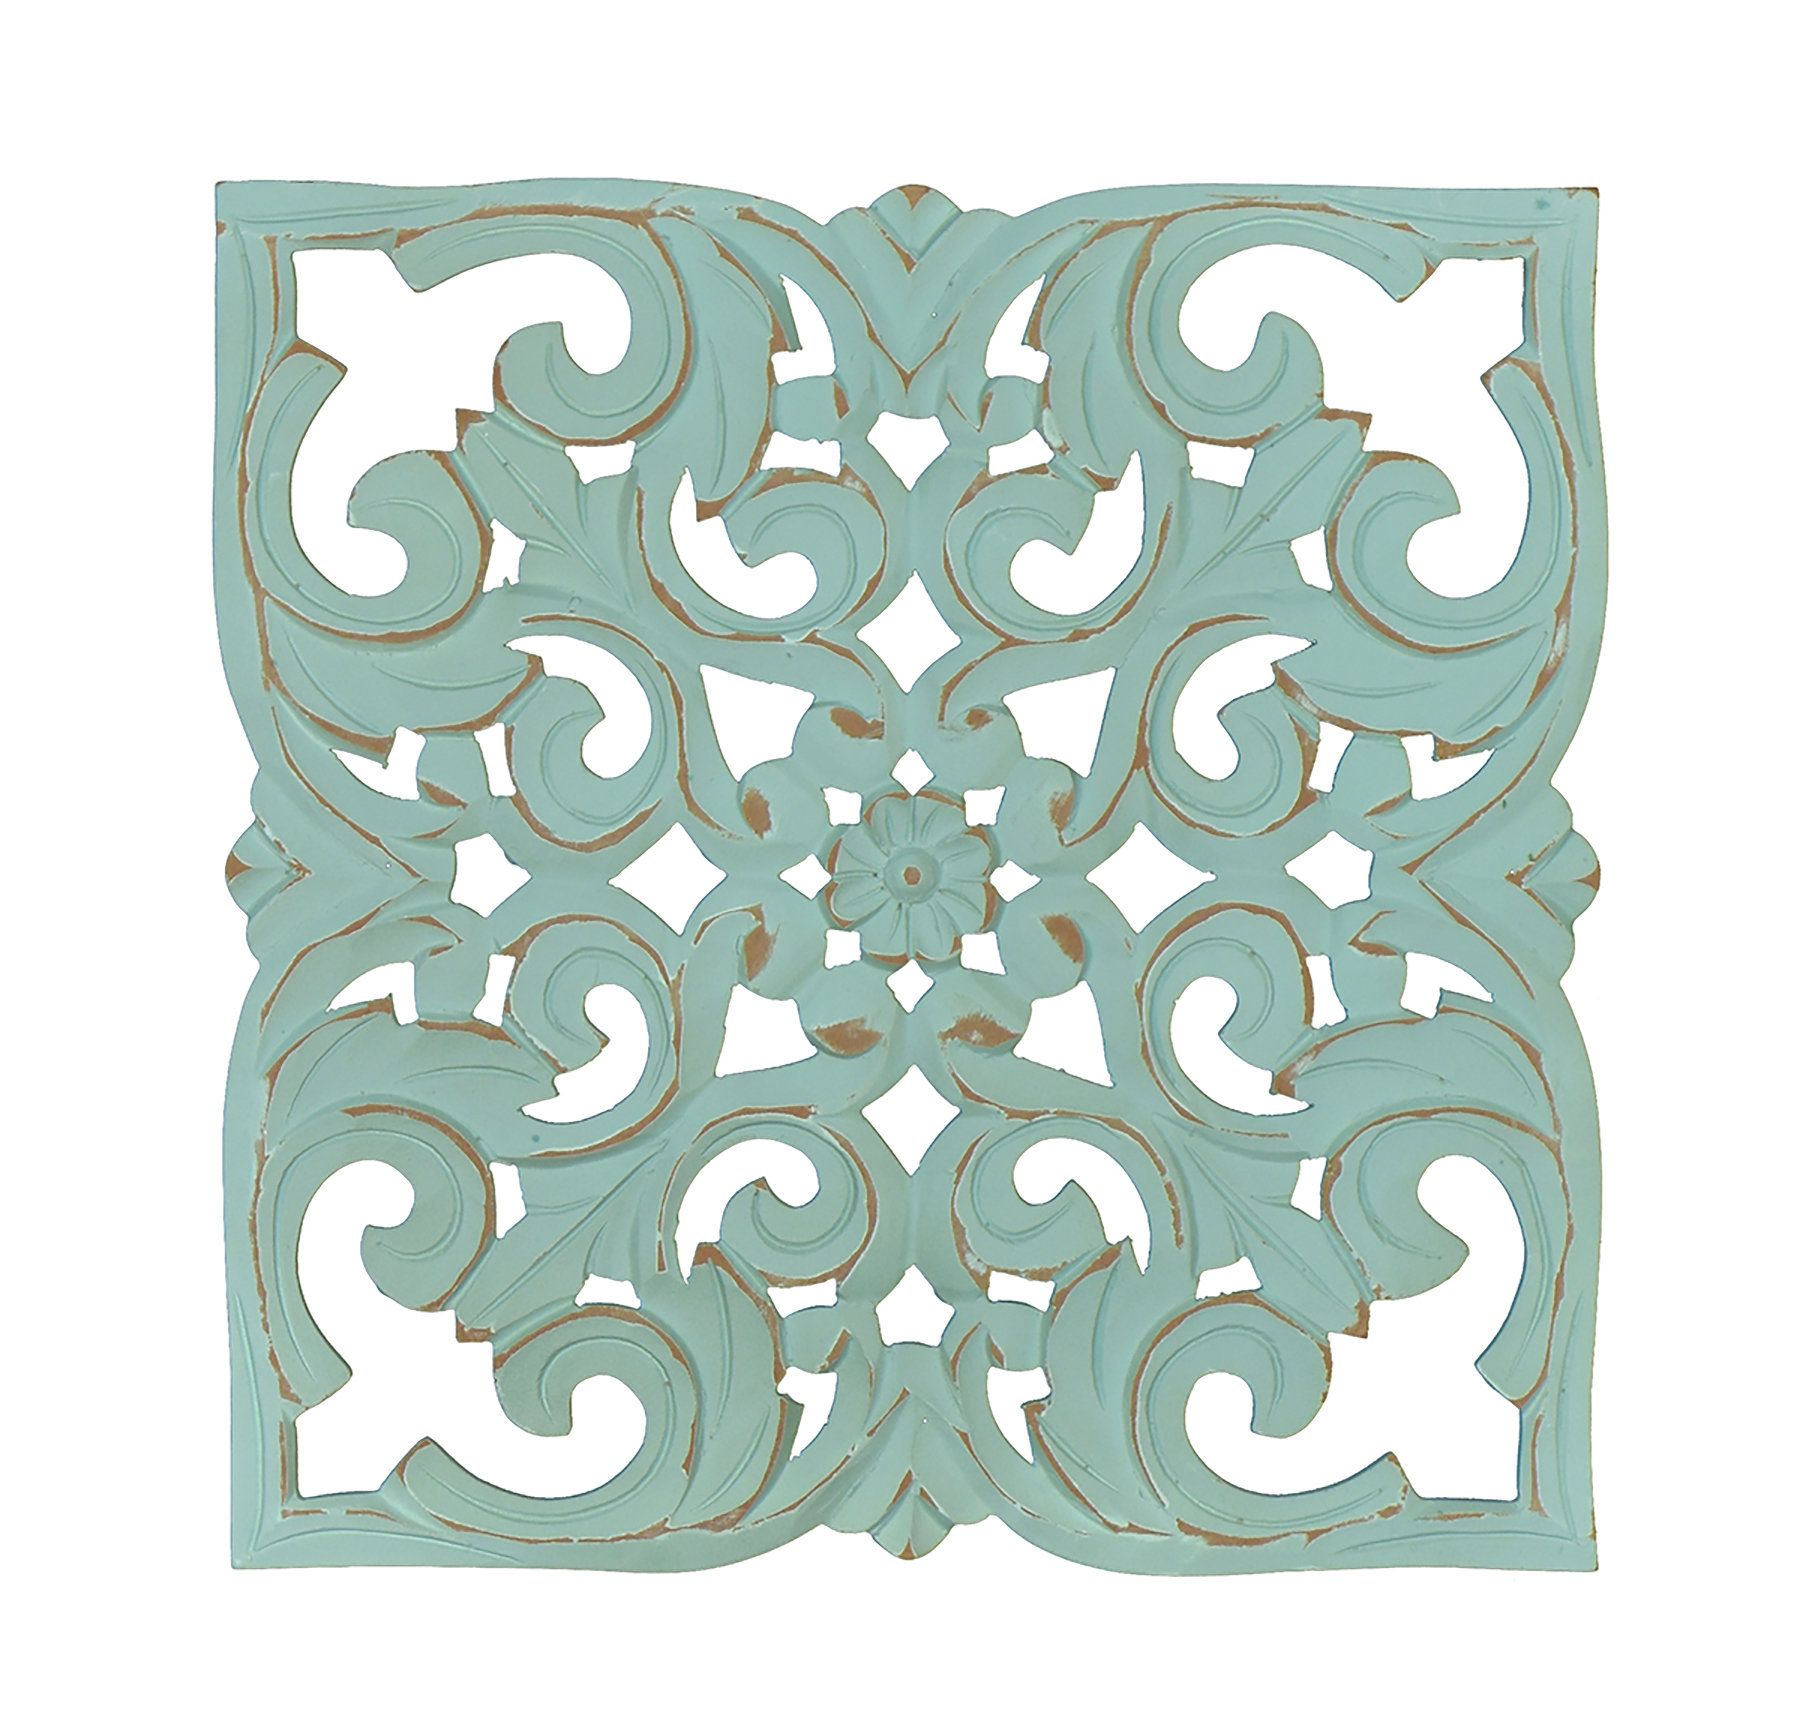 Carved Medallion Wall Décor Pertaining To Rioux Birds On A Wire Wall Decor (View 12 of 30)